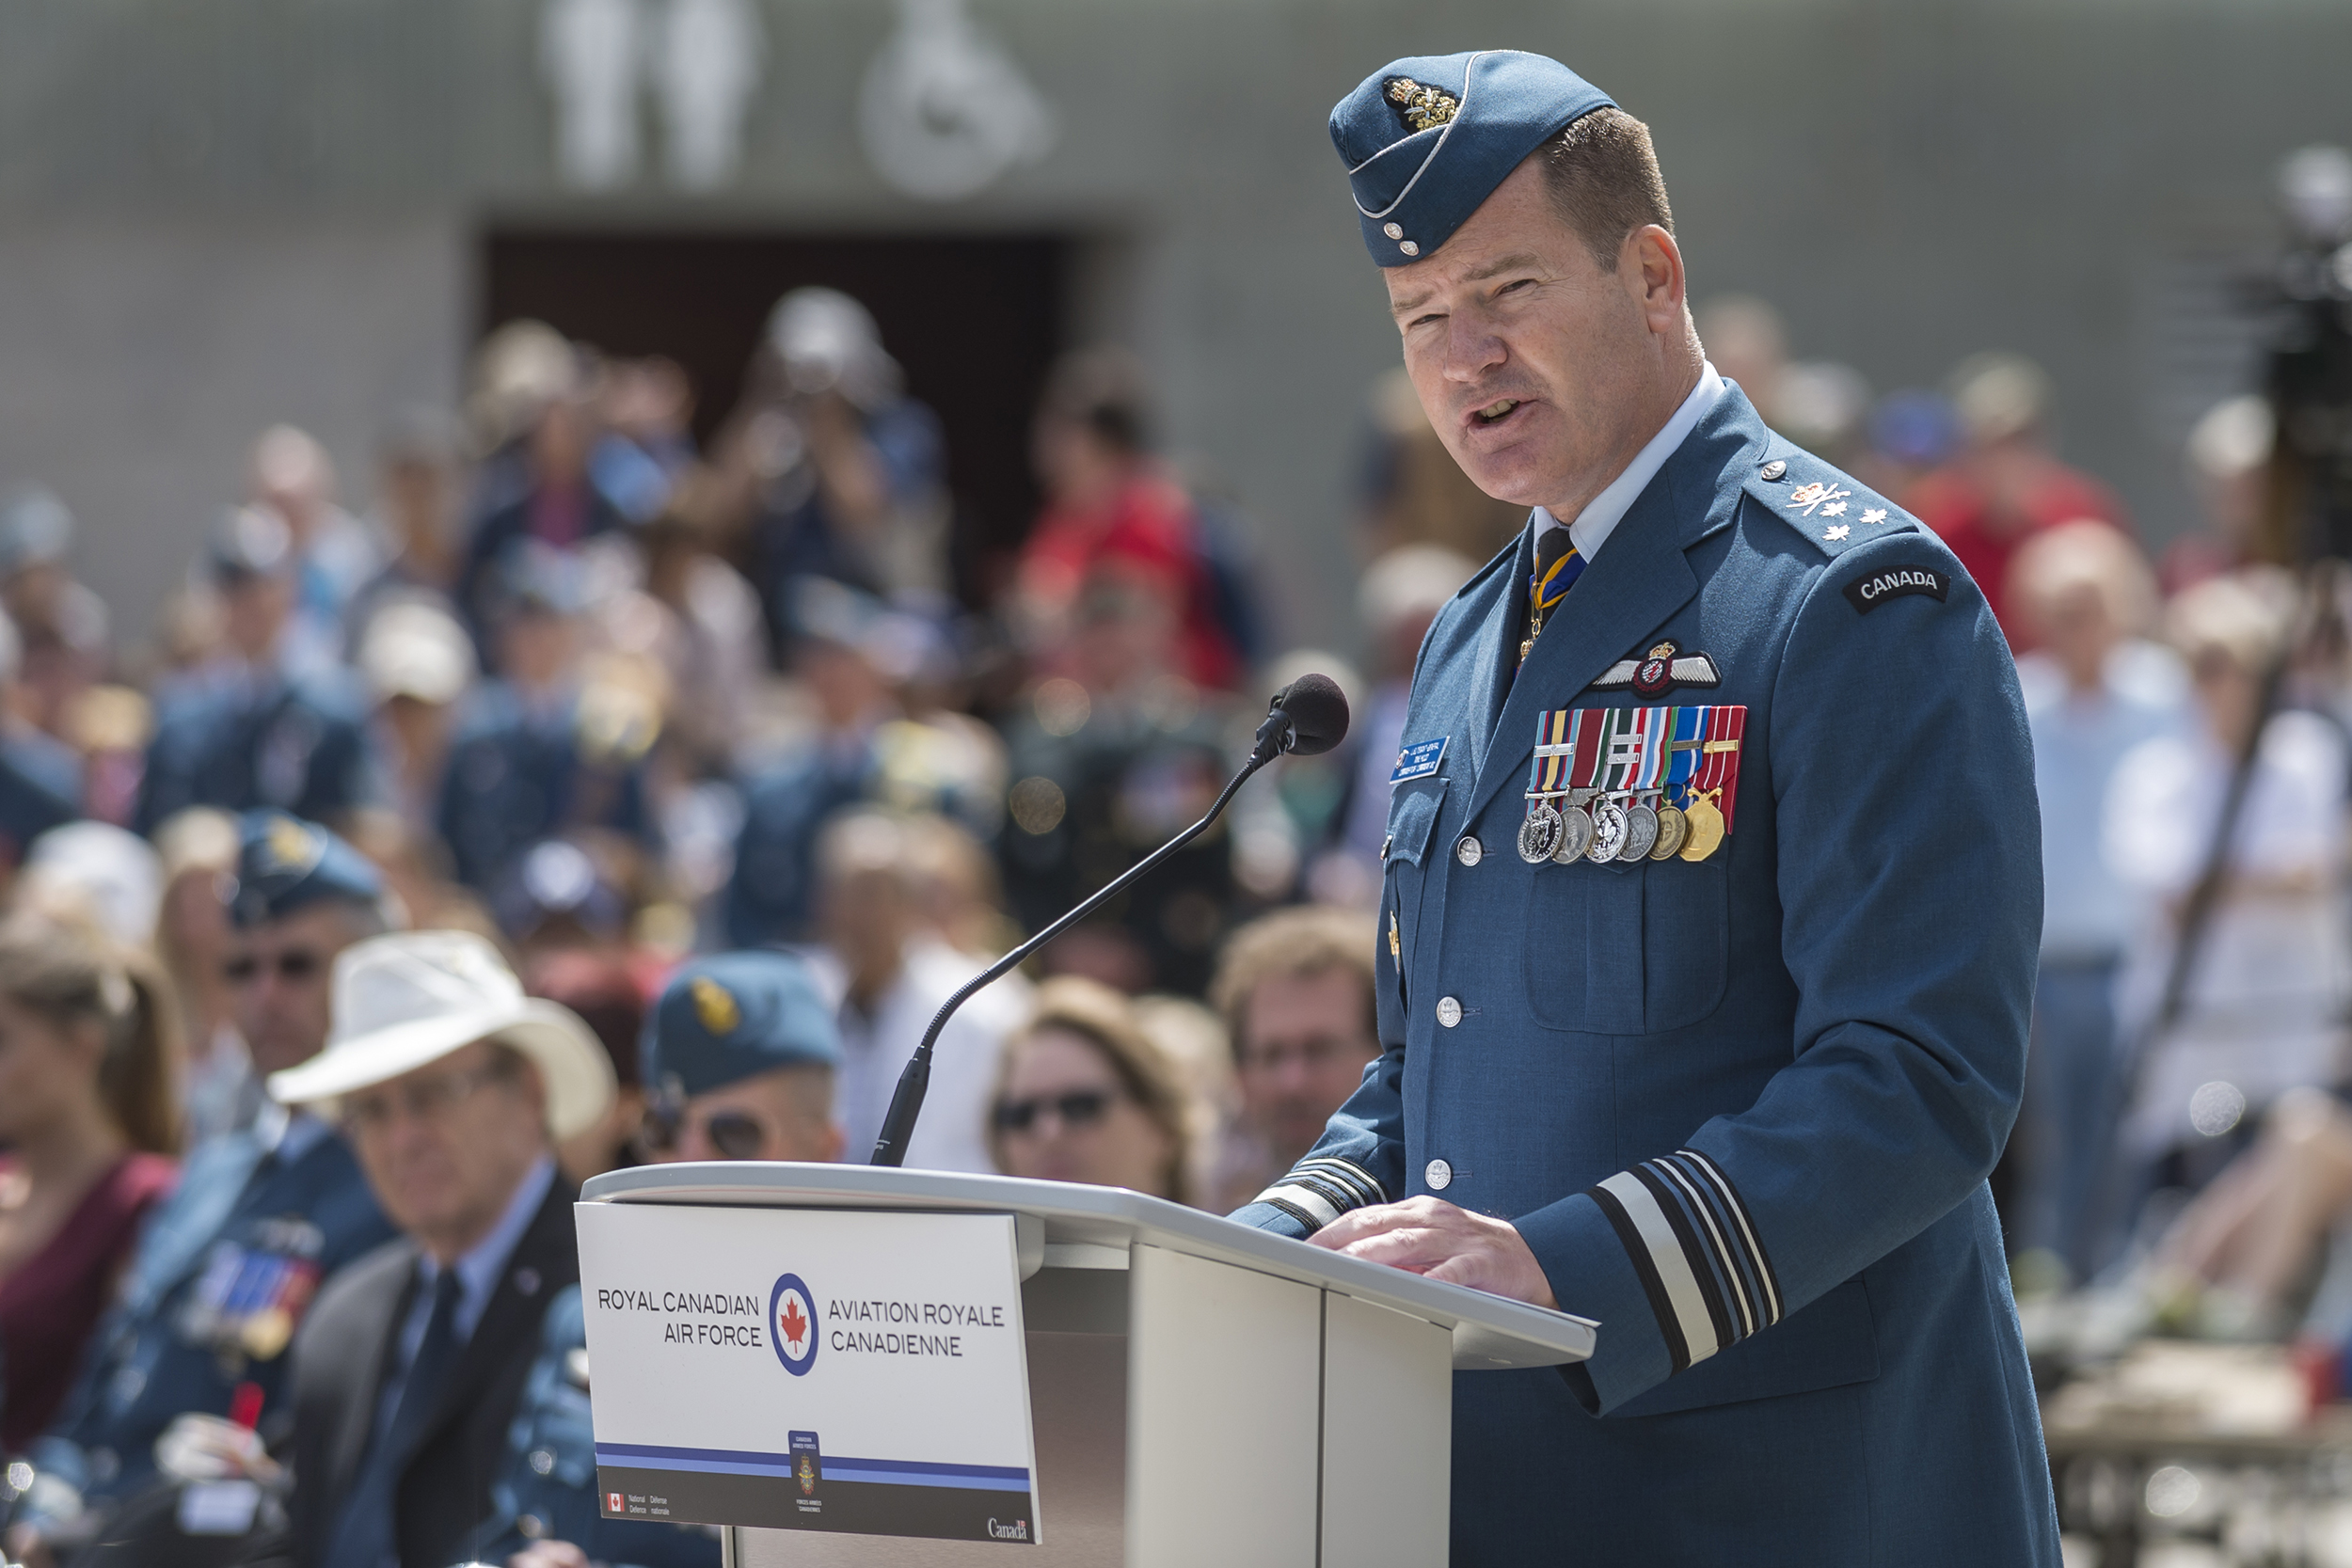 A man in a blue uniform stands behind a podium, speaking.